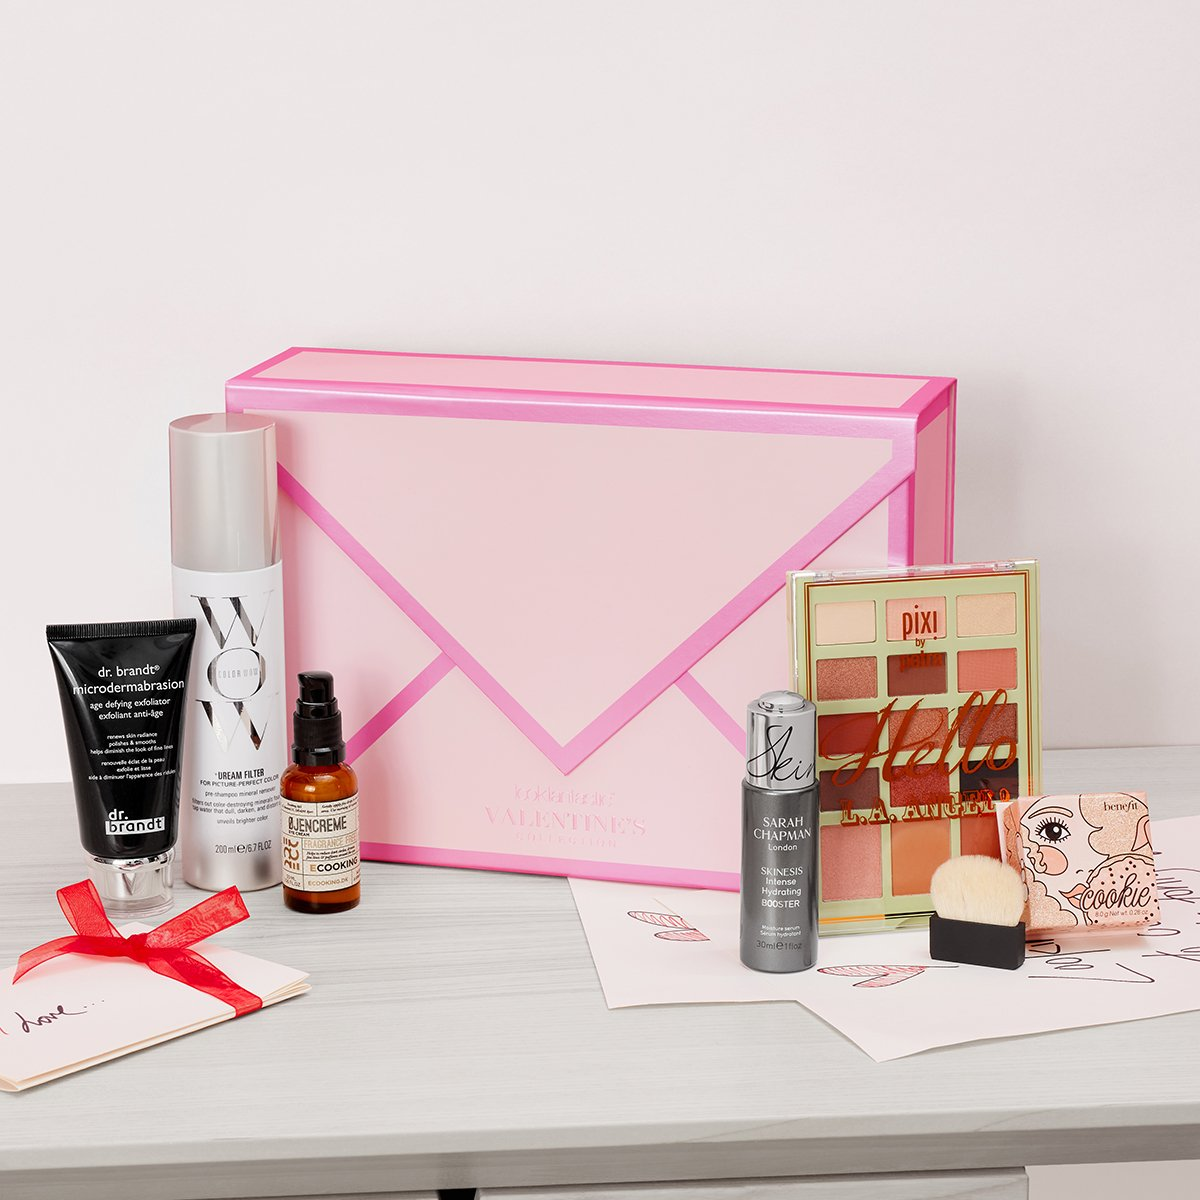 Love is in the air – Introducing the lookfantastic Valentine's Collection